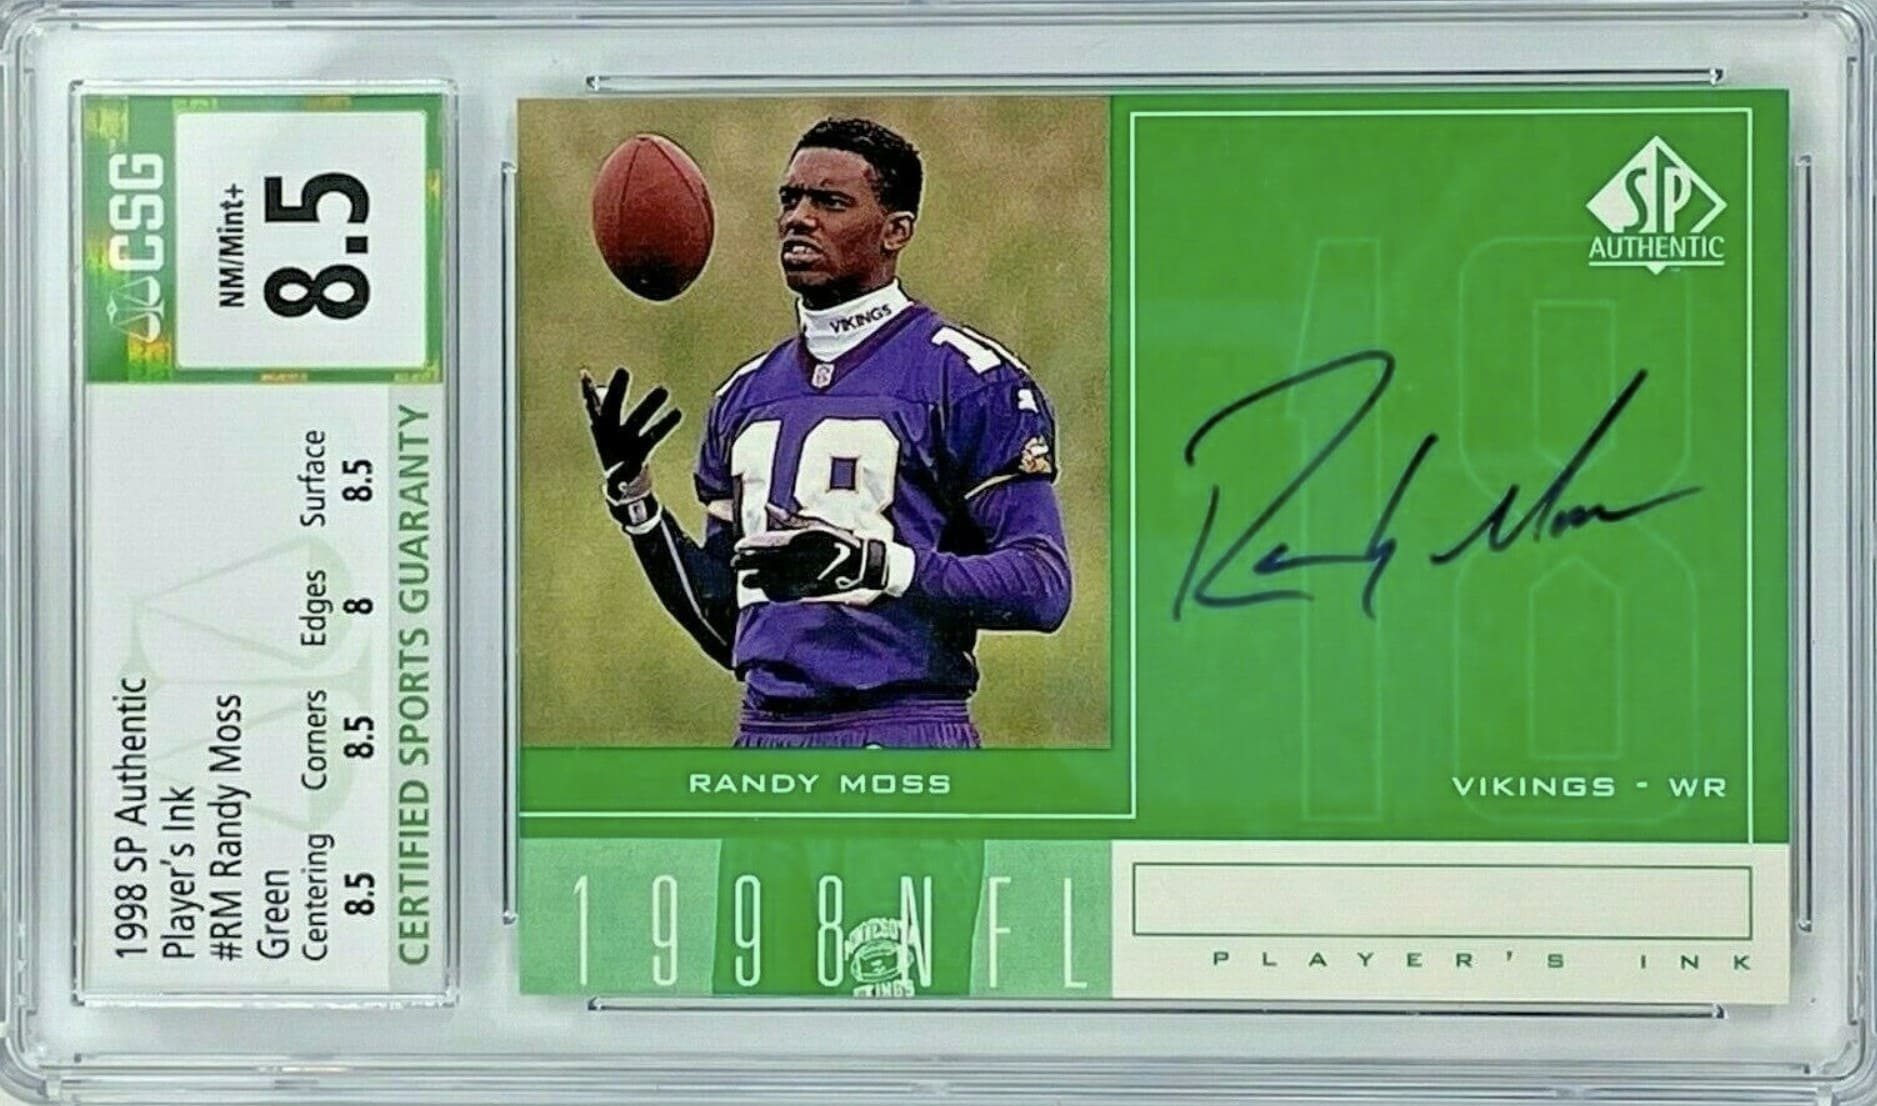 1998 SP Authentic Player's Ink Randy Moss RC #RM